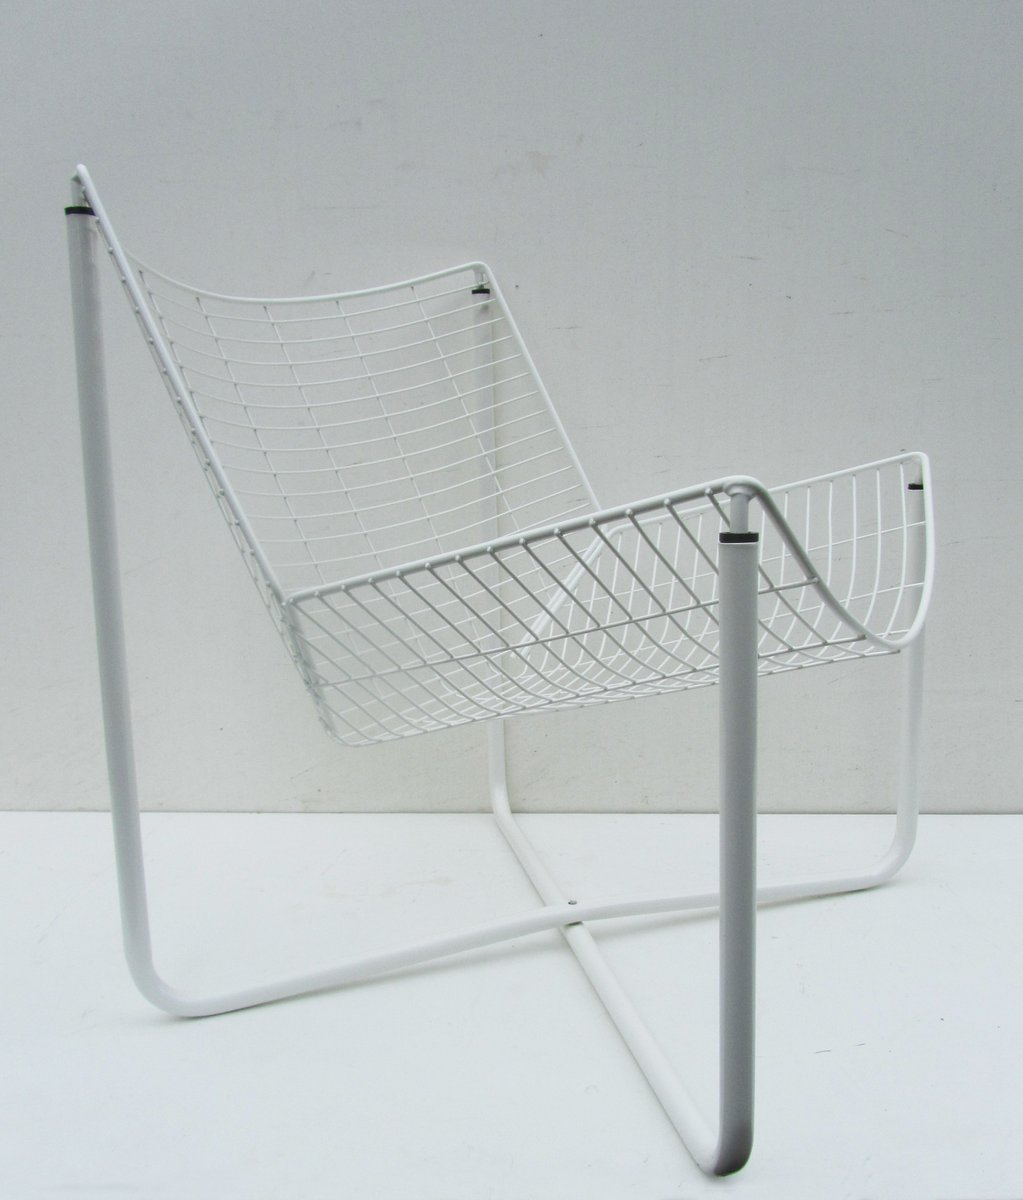 ikea metal chairs high chair that attaches to the table white jarpen wire by niels gammelgaard for 1983 sale price per piece